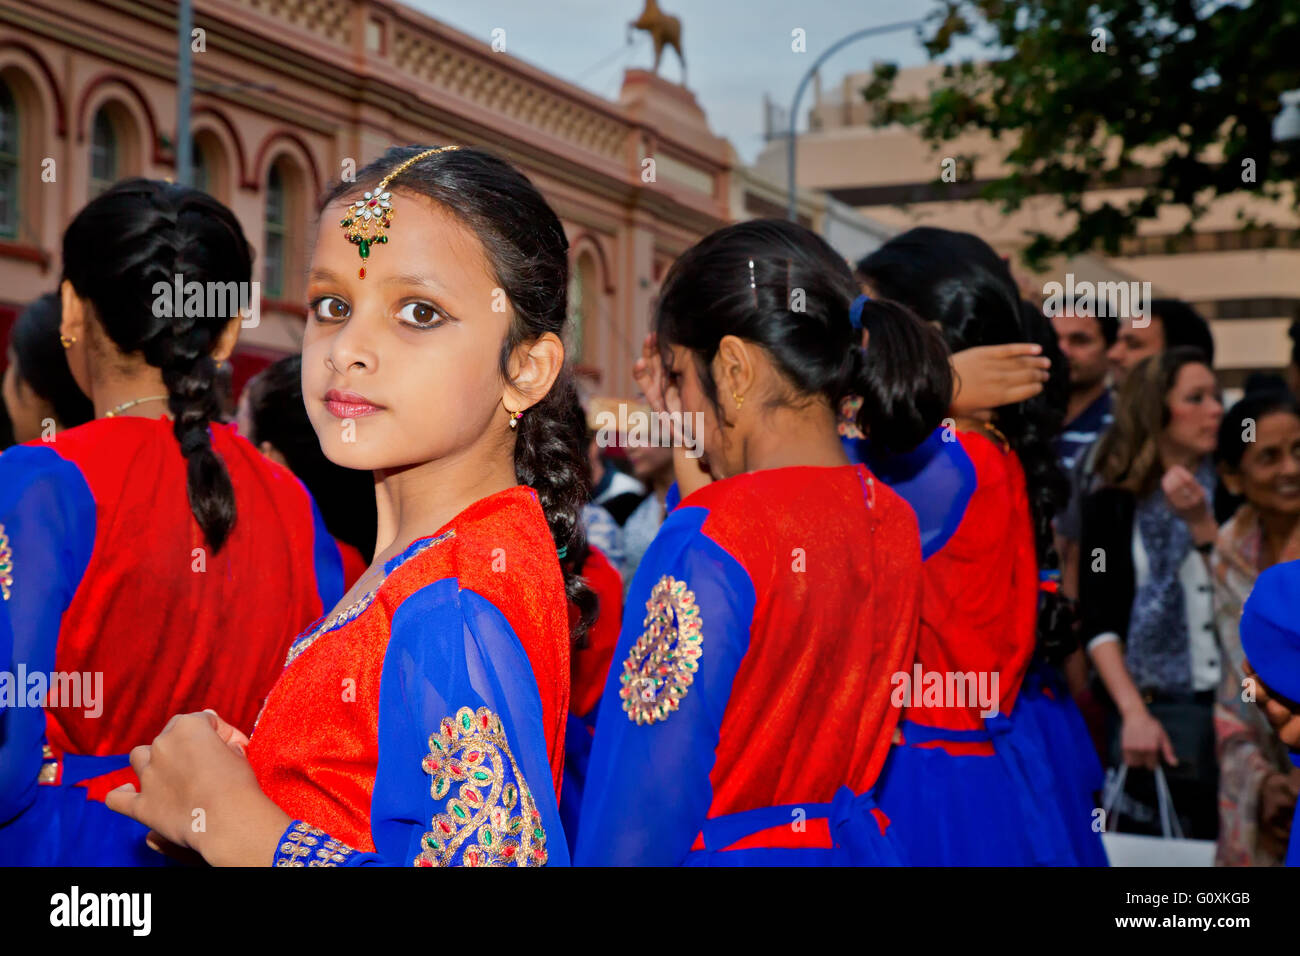 A young girl dancer wears a traditional Indian costume in a parade. - Stock Image